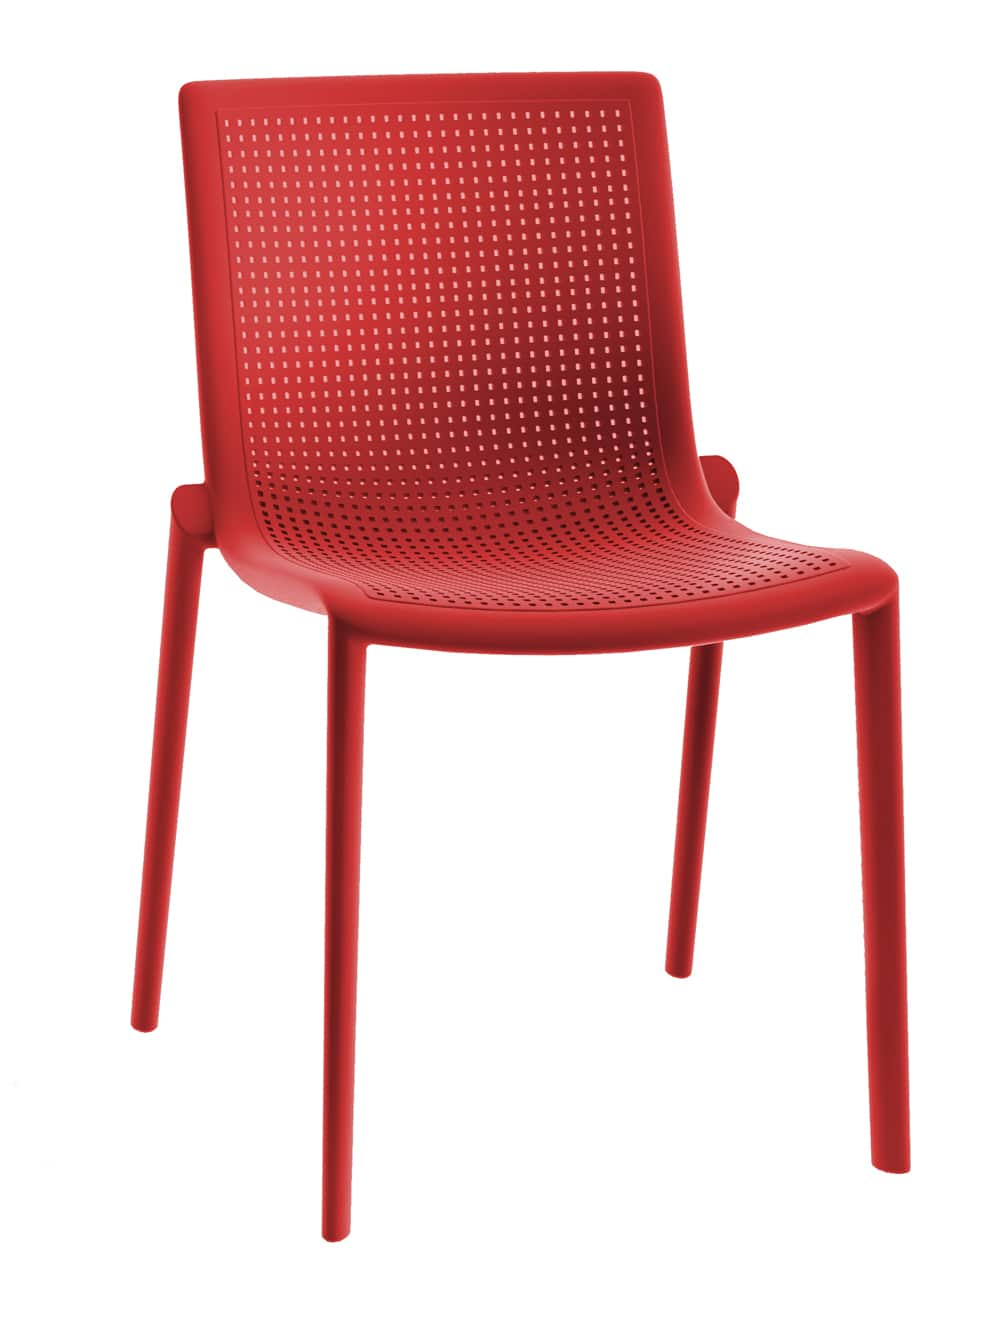 <p>Outdoor Furniture Contemporary Collection – Colorado Chair – Red.</p> <p> </p> <p>Award-winning Chair designed for indoor and outdoor use available in a variety of colours, stackable, capturing essential features such as lightness, stability, functionality, ergonomics and care for the environment.</p>